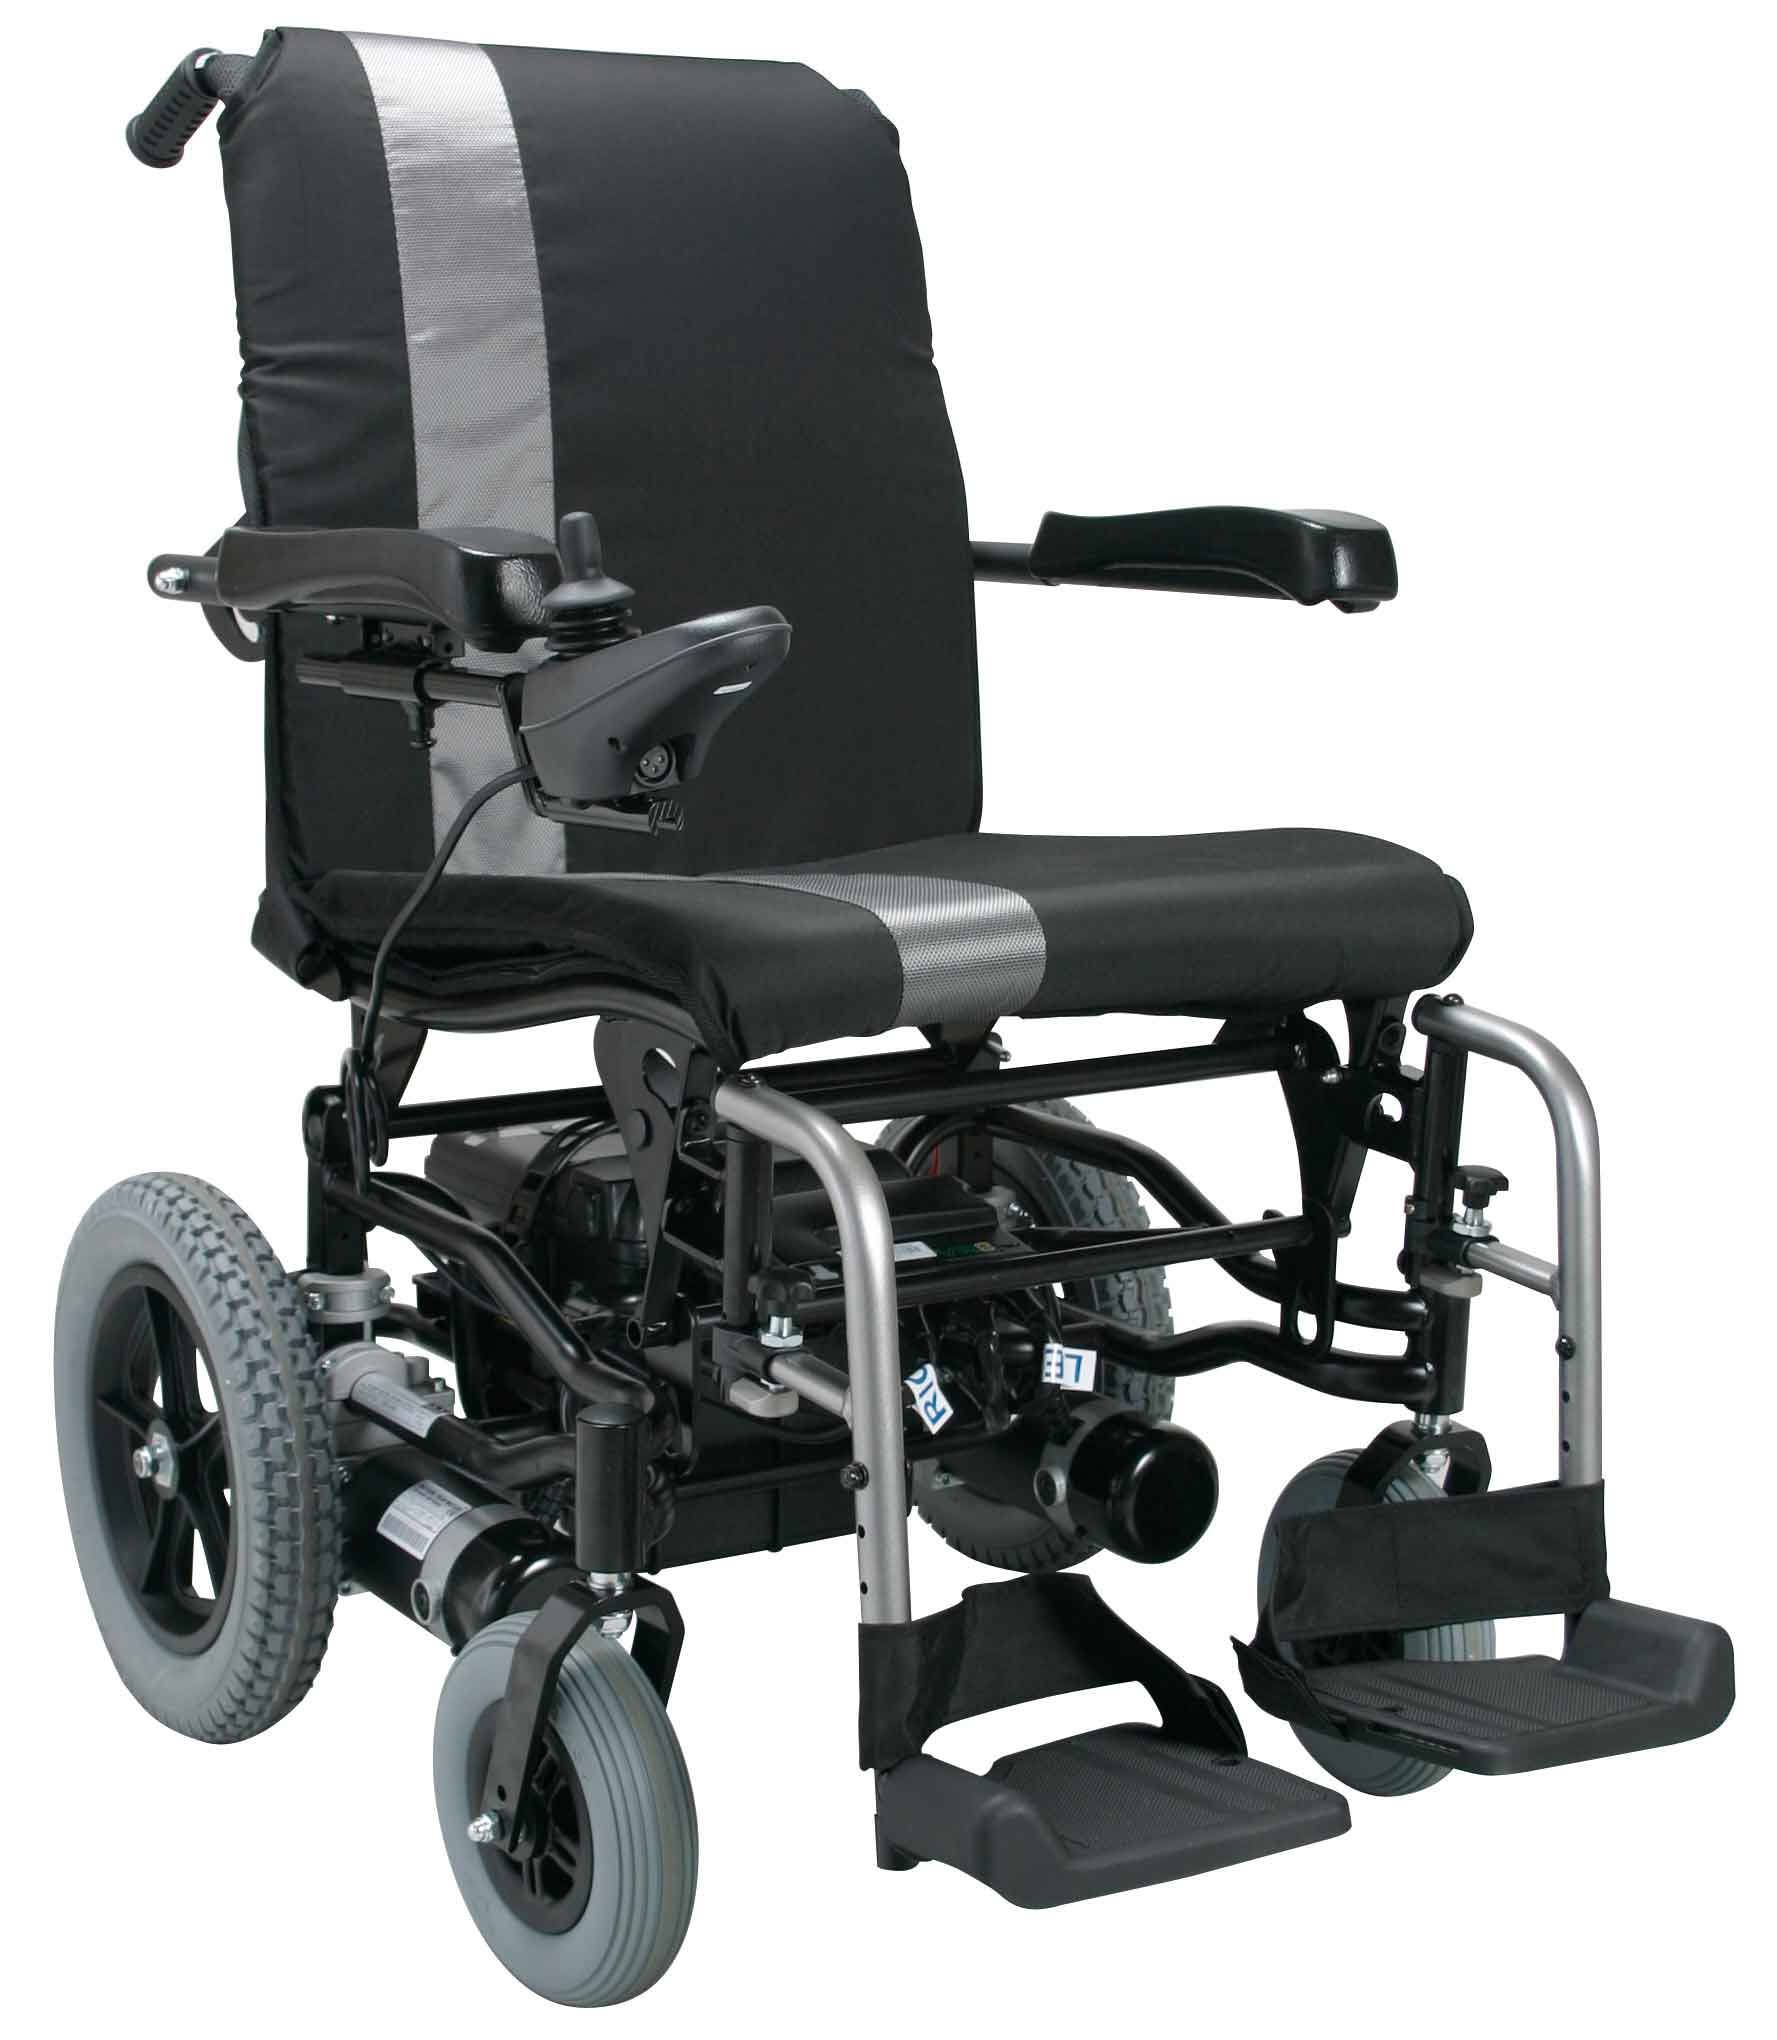 electric wheel chairs rocking chair pads cushions please help  i need an wheelchair a latent